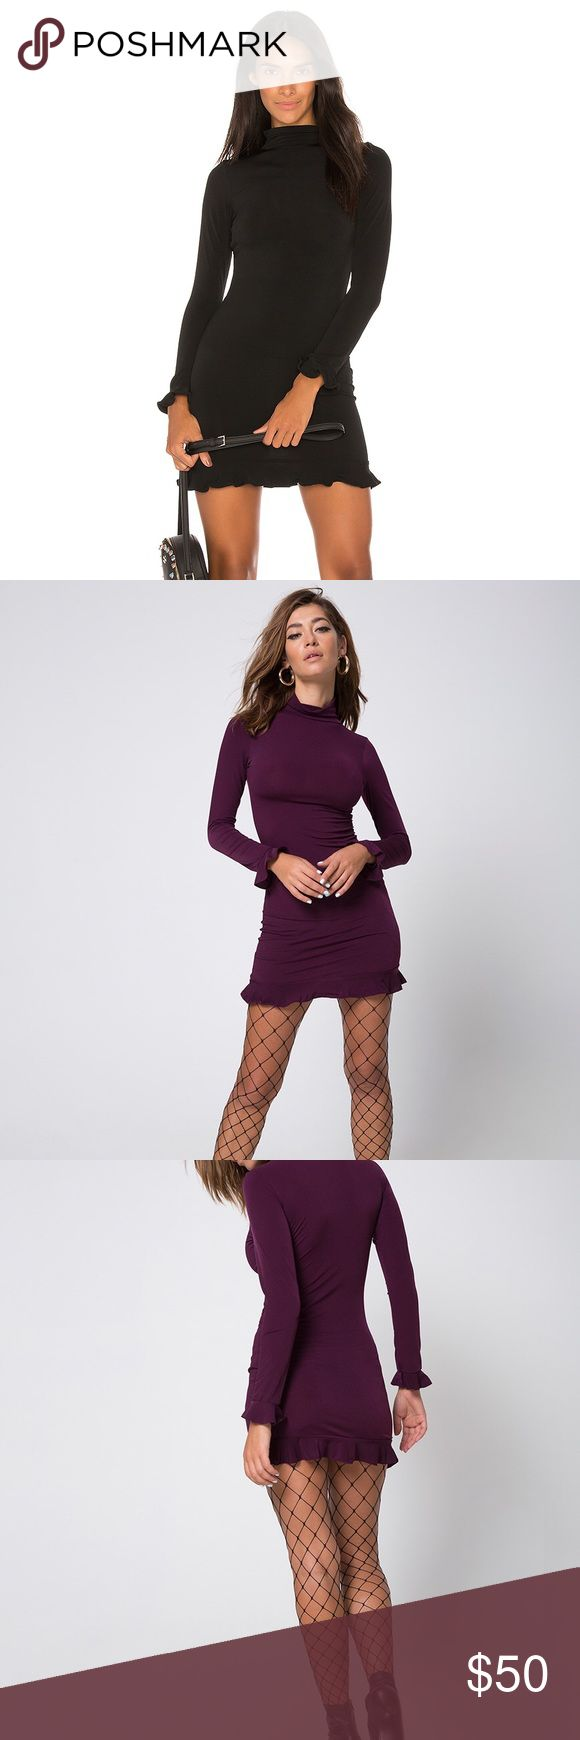 Motel Lafitte mini dress SiZe xs NWT Dress by motel rocks  Day or night, you decide! The Lafitte dress will see you through from meeting room to bar, date night to dancefloor. In a rich plum tone this beauty features a figure hugging fit with high neck, long sleeves and cute ruffle hemline and cuffs. Keep it edgy with fishnet tights and dark smokey eyes. This dress comes in color plum as seen in last few pics Motel Rocks Dresses Long Sleeve